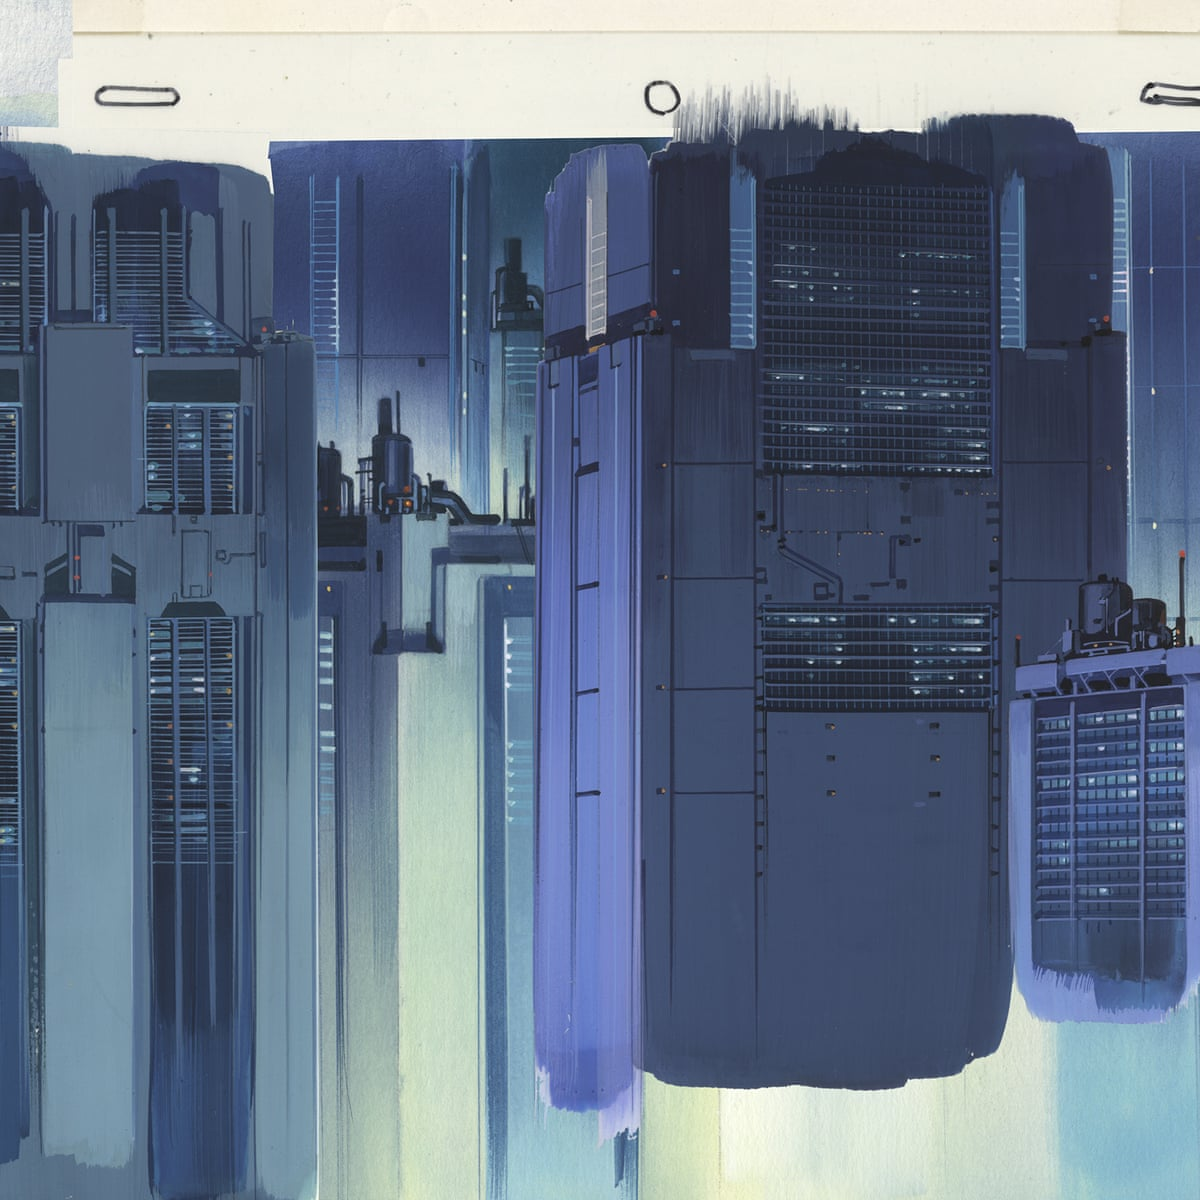 Ghost In The Shell S Urban Dreamscapes Behind The Moody Art Of The Anime Classic Ghost In The Shell The Guardian